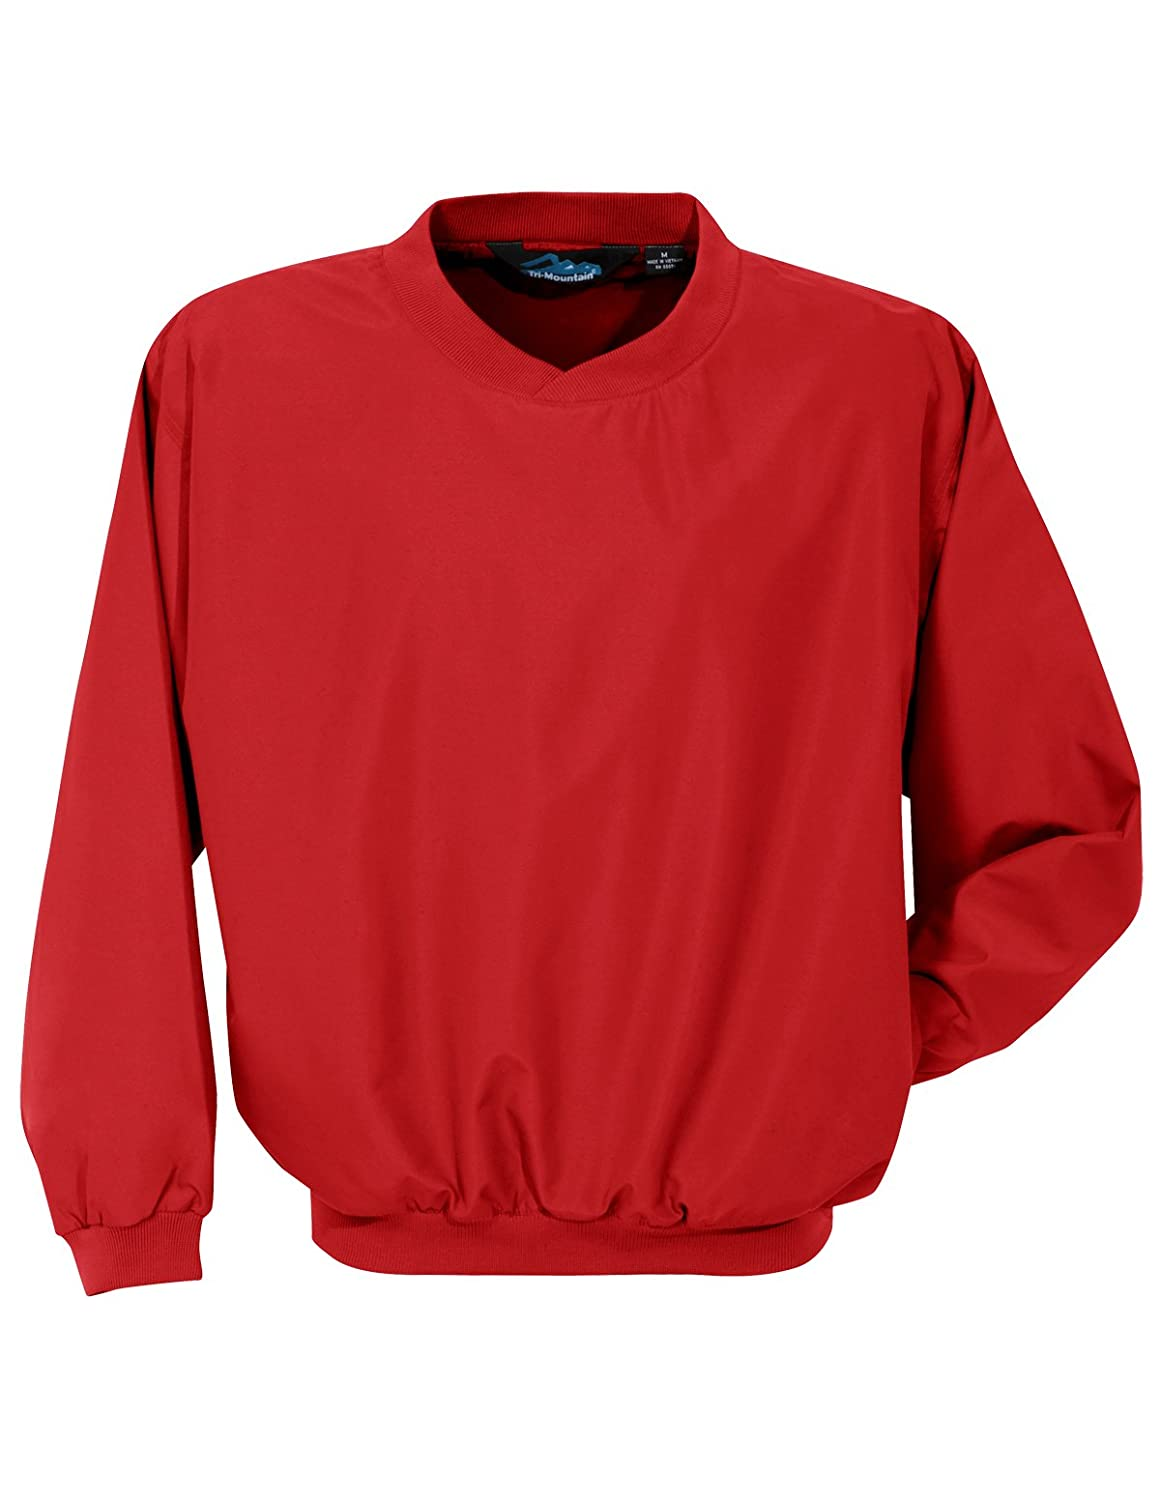 Tri-Mountain 2500 Microfiber windshirt with nylon lining